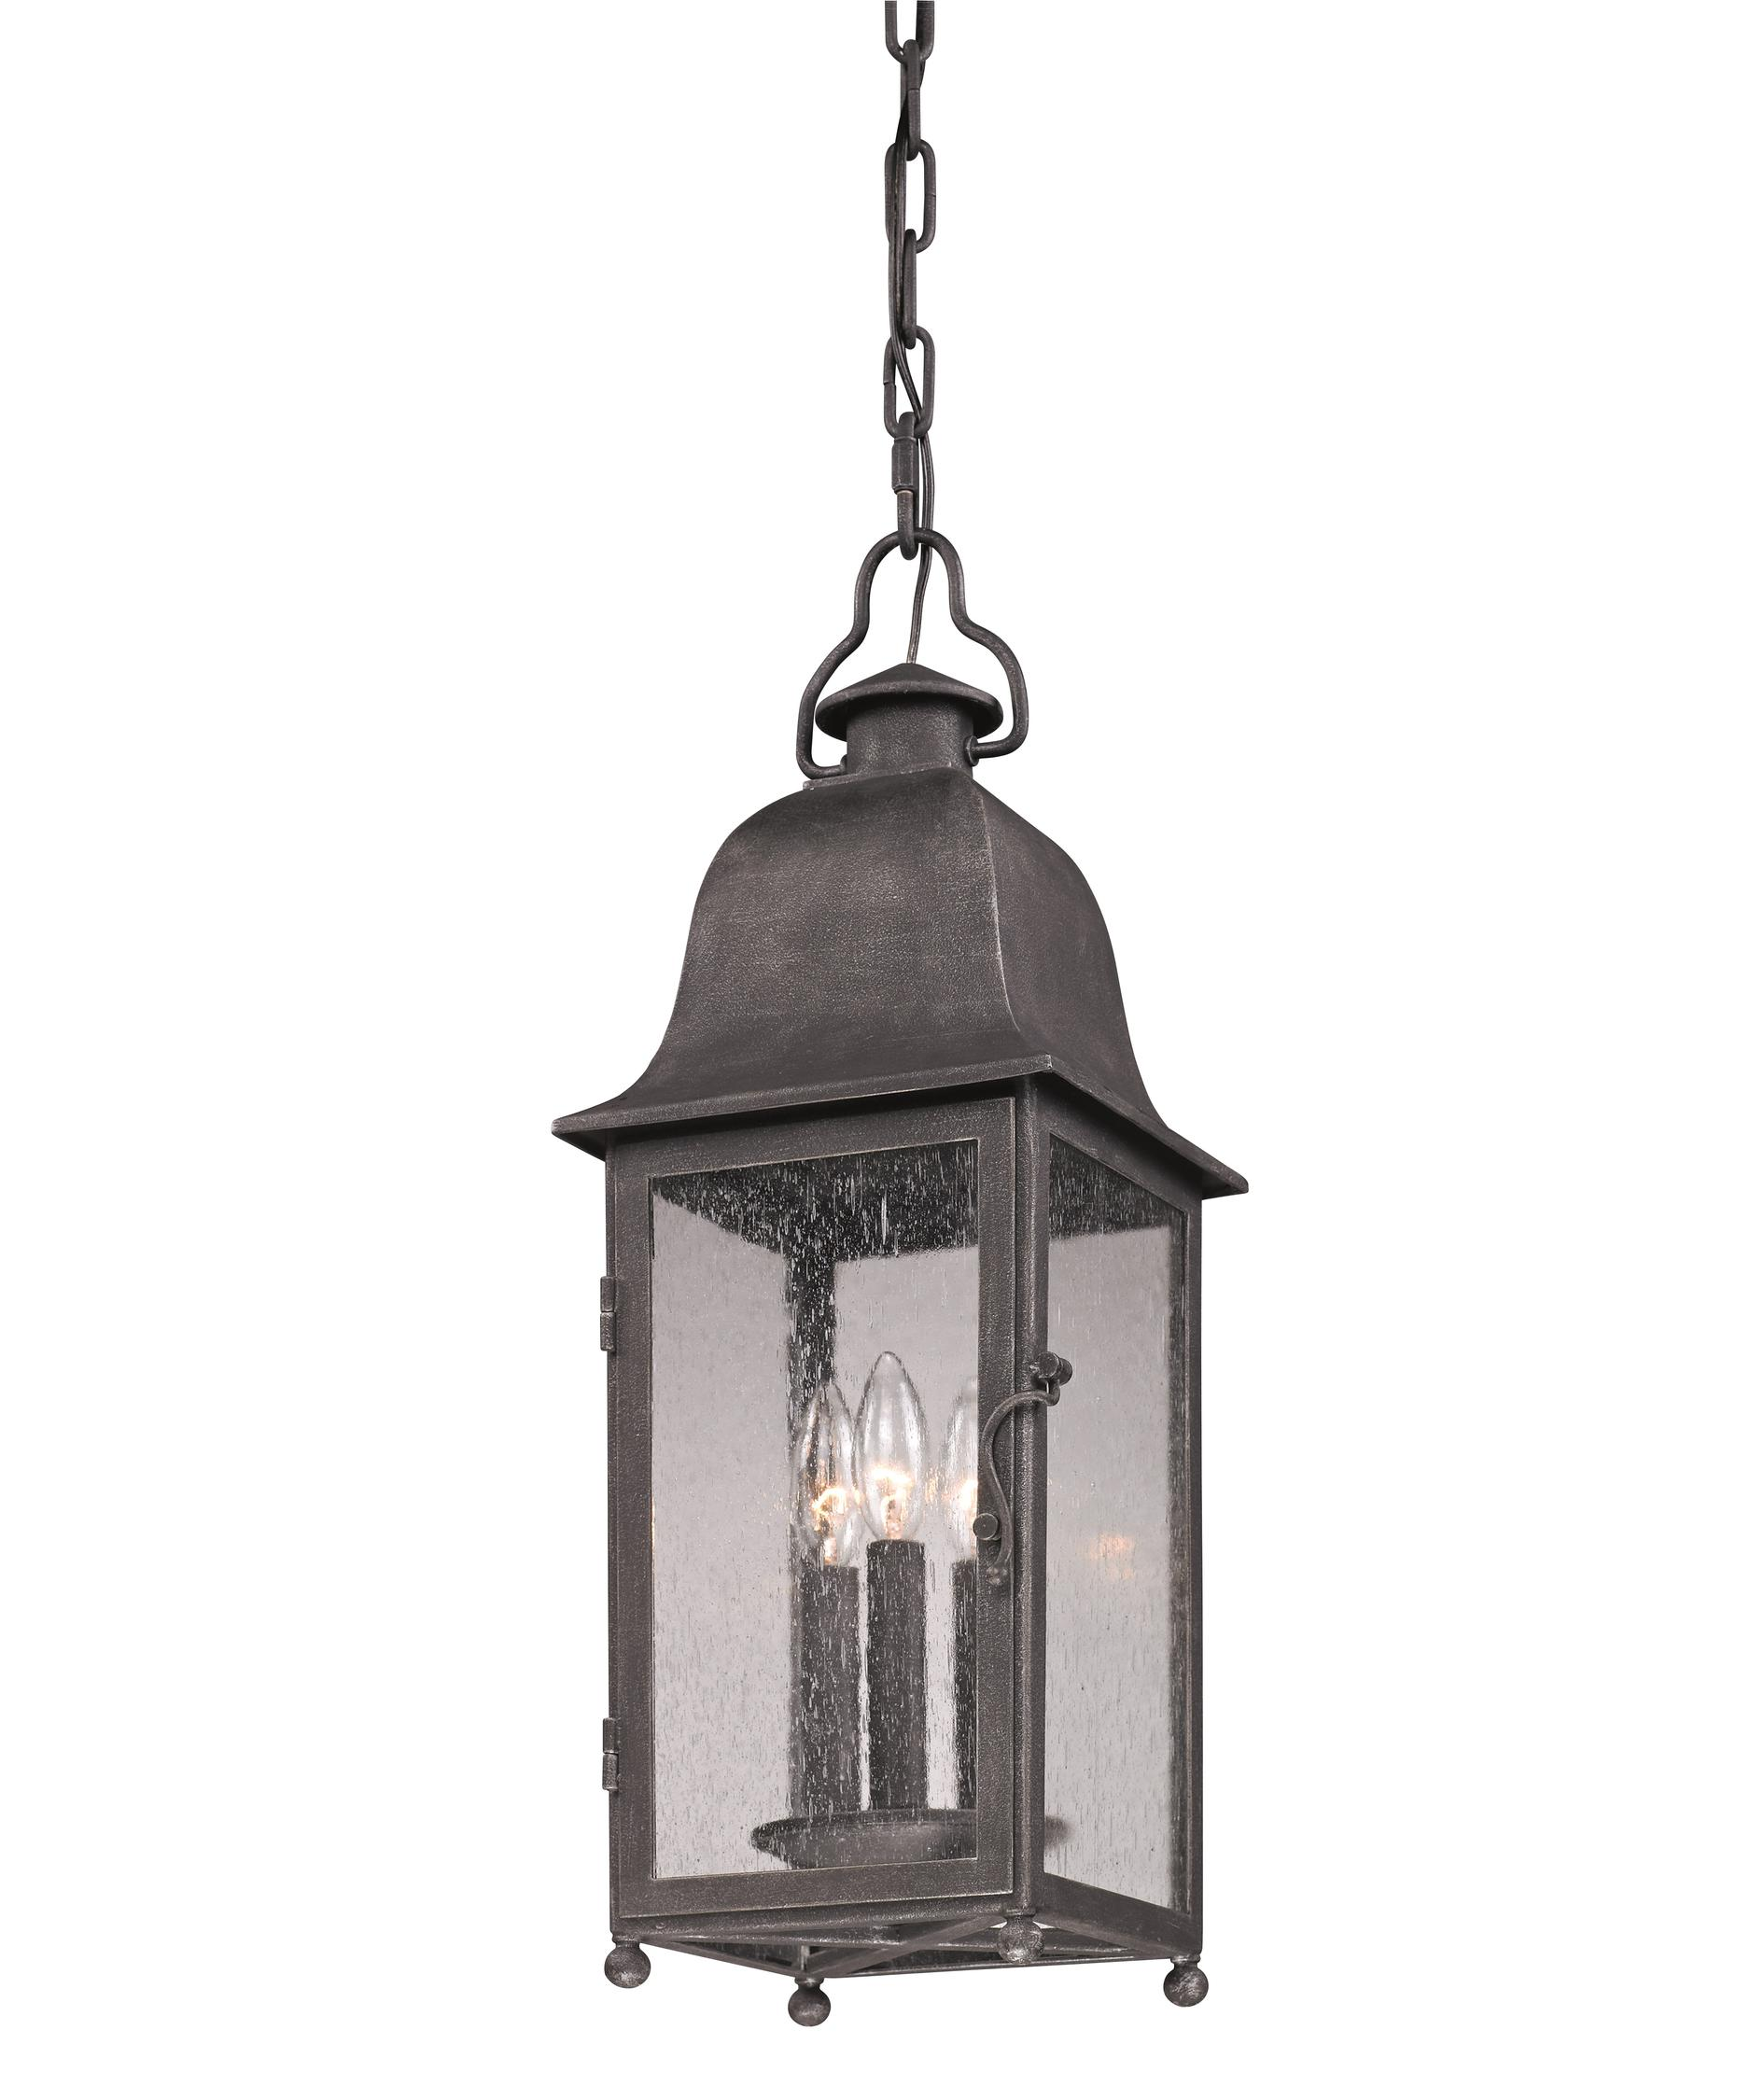 Outdoor hanging lamp - Shown In Aged Pewter Finish And Clear Seeded Glass